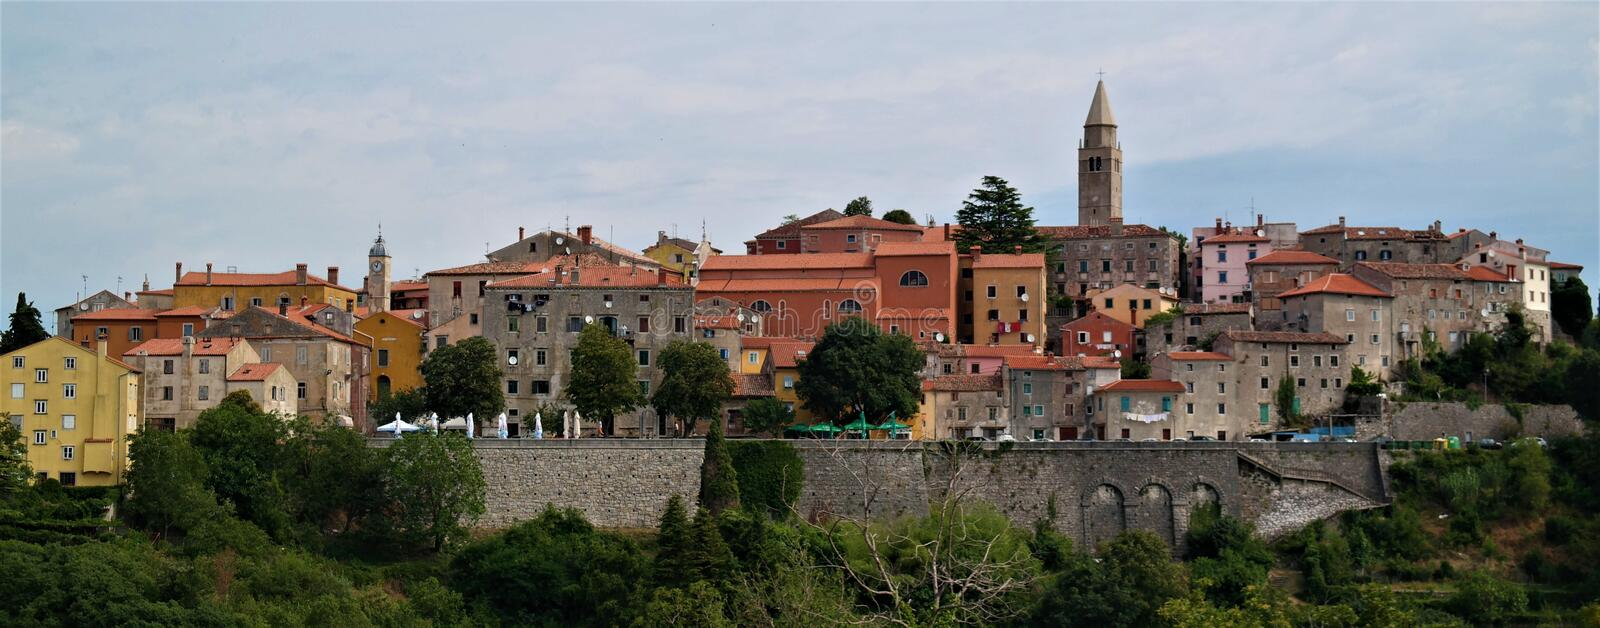 Town, City, Sky, Medieval Architecture royalty free stock photo